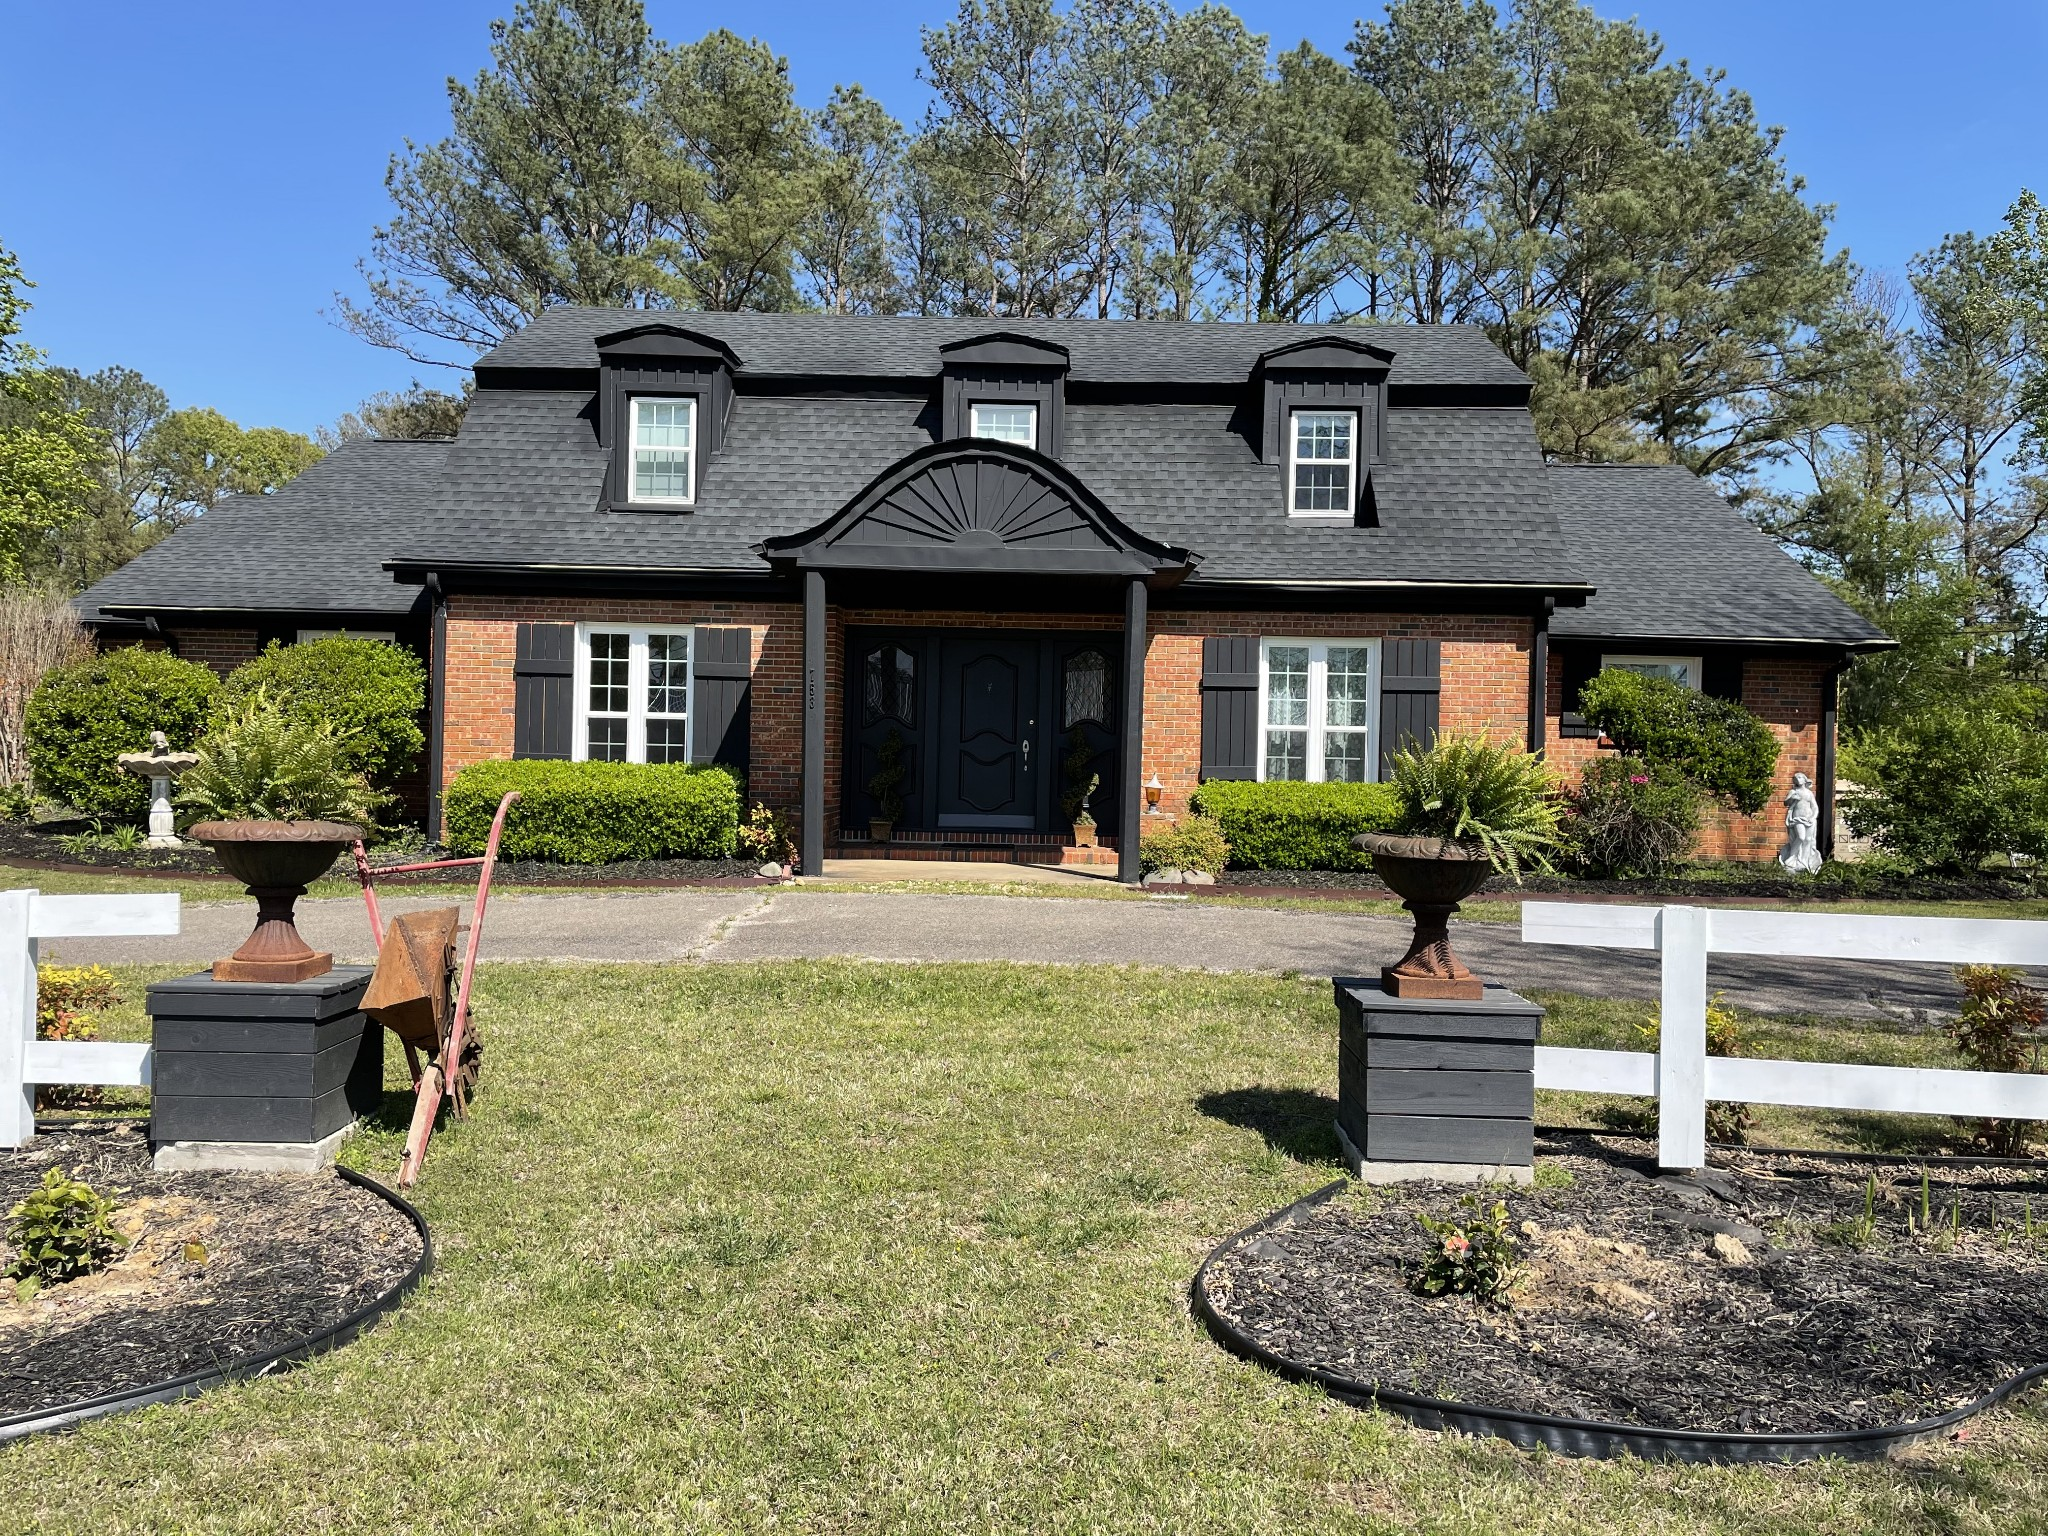 753 E Poplar Dr Property Photo - Decaturville, TN real estate listing